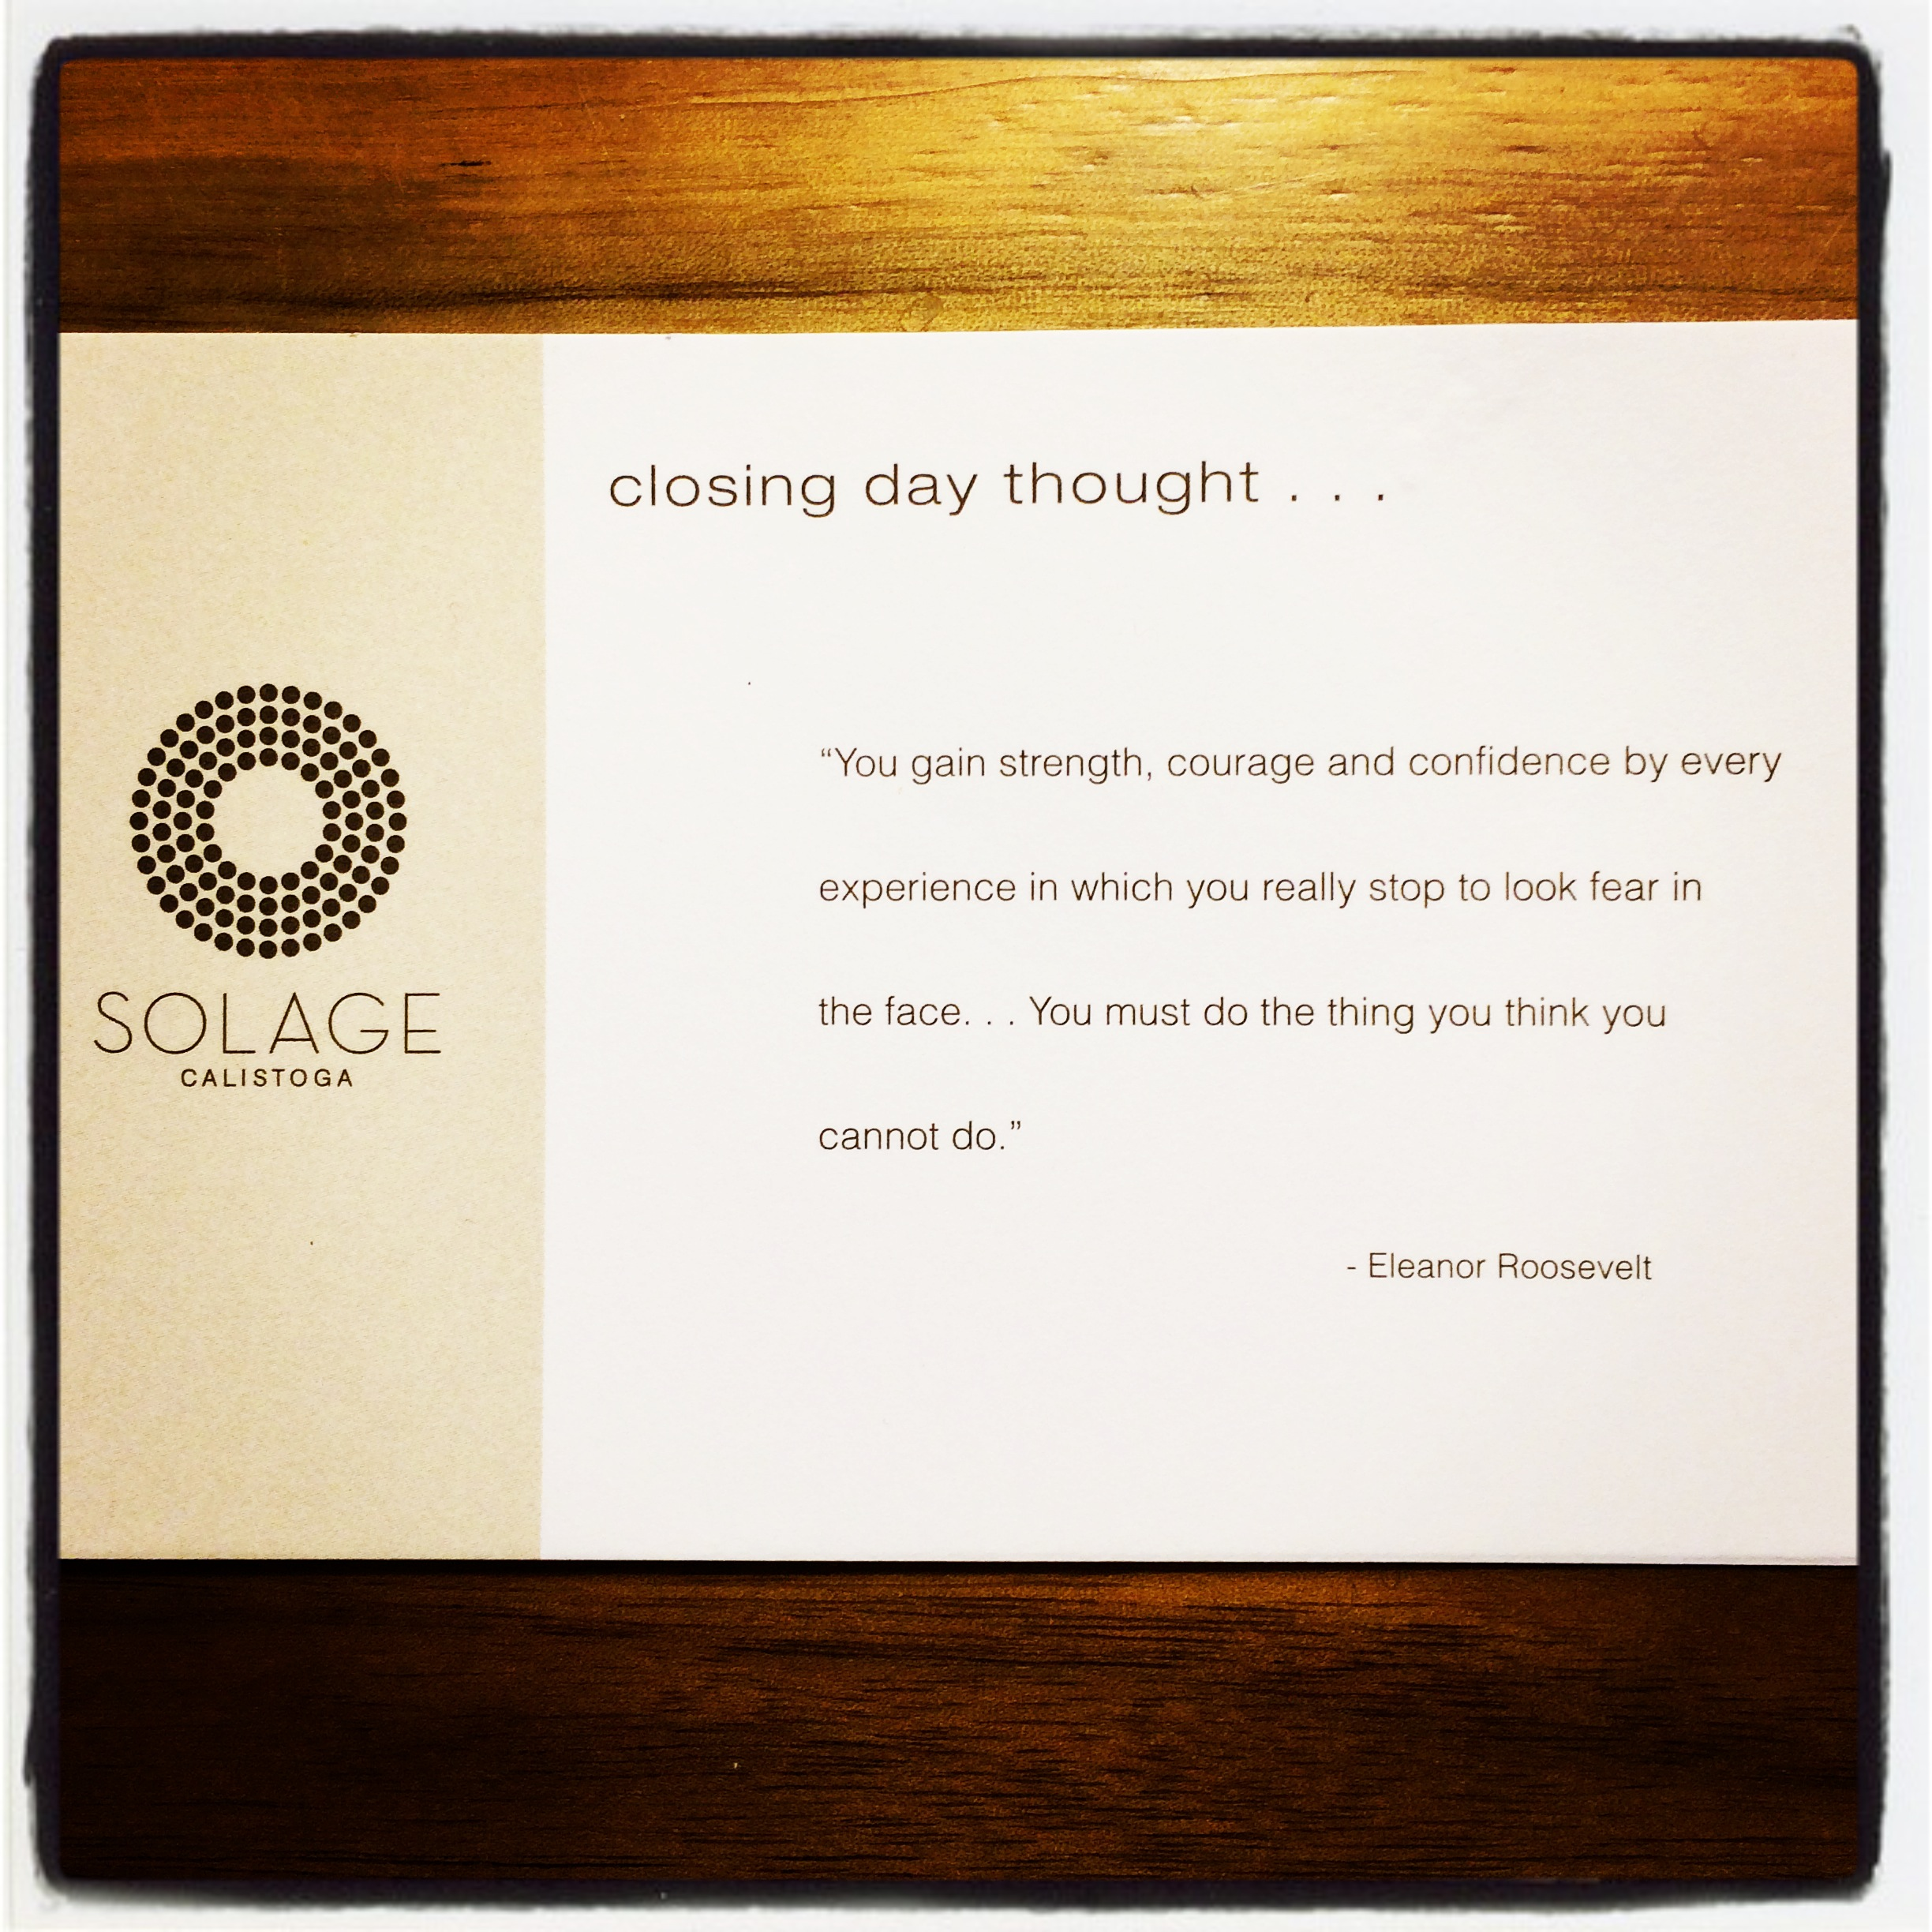 Inspiring closing day thoughts from Solage Resort